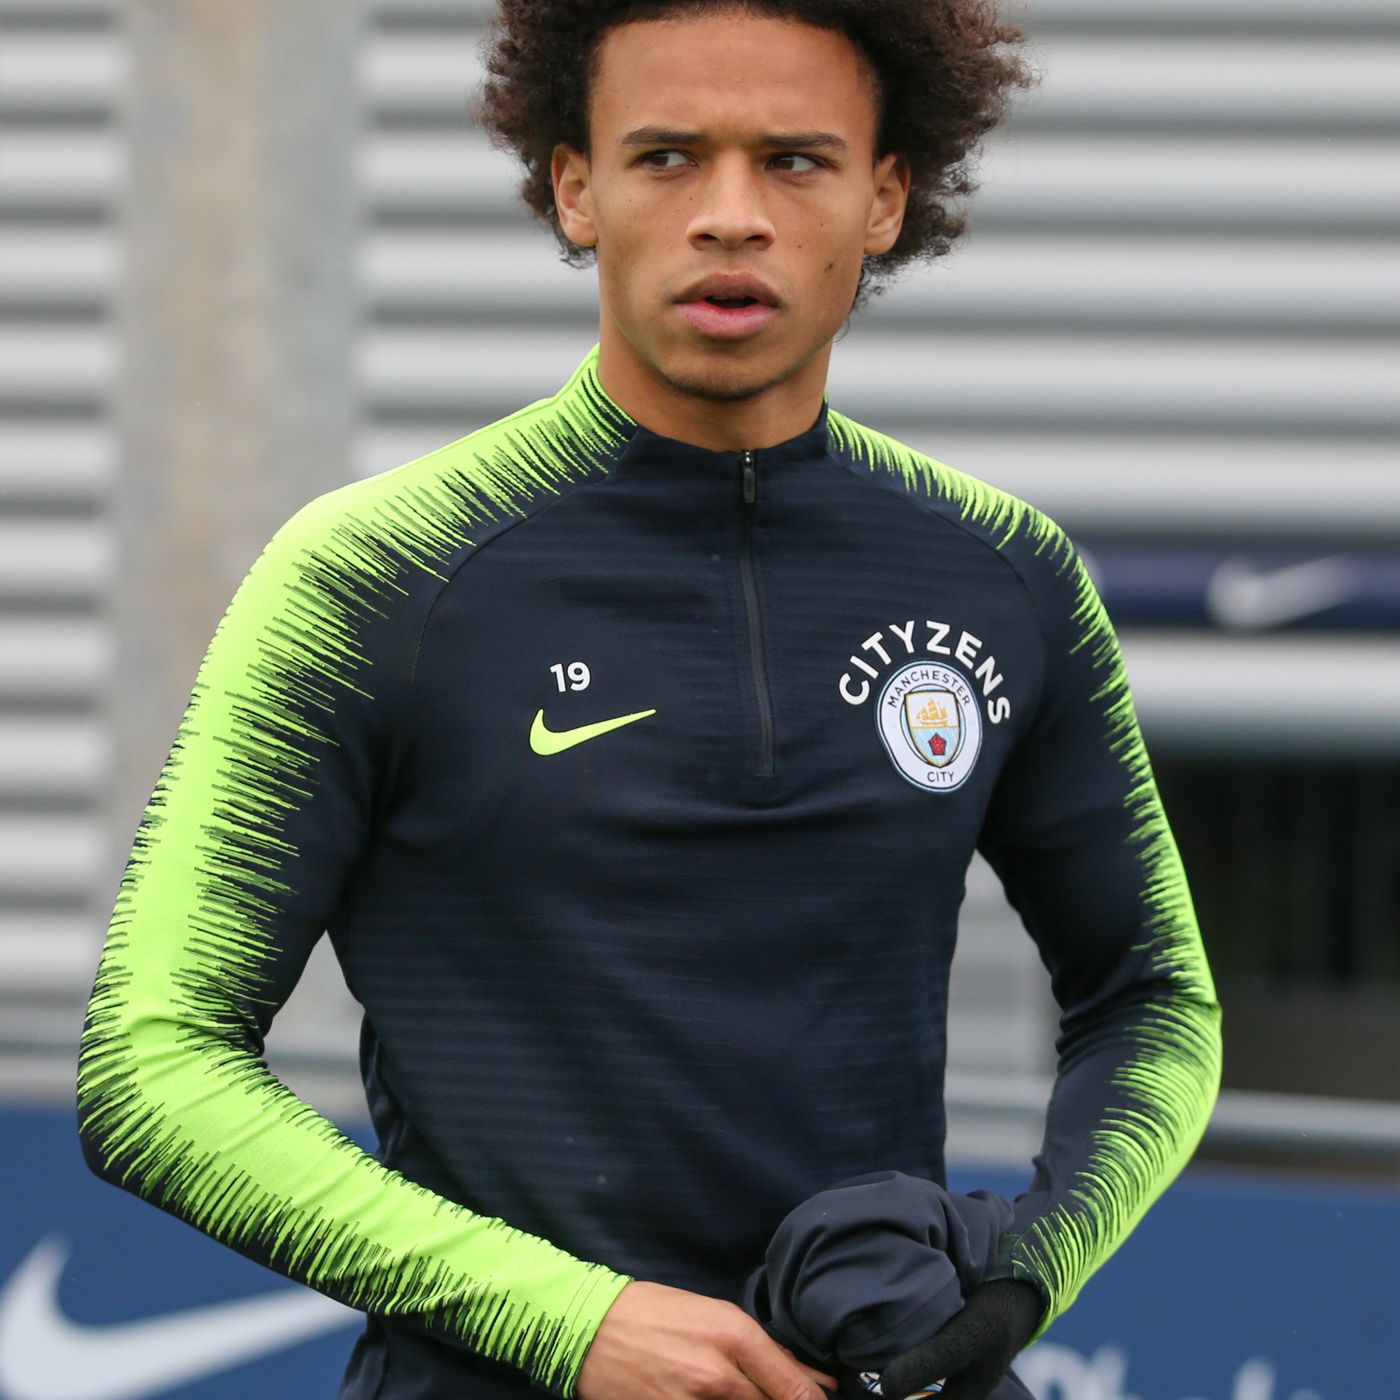 hot sale online d39e4 a0423 Dear Leroy Sane: Bayern Munich just wants to know if you are ...